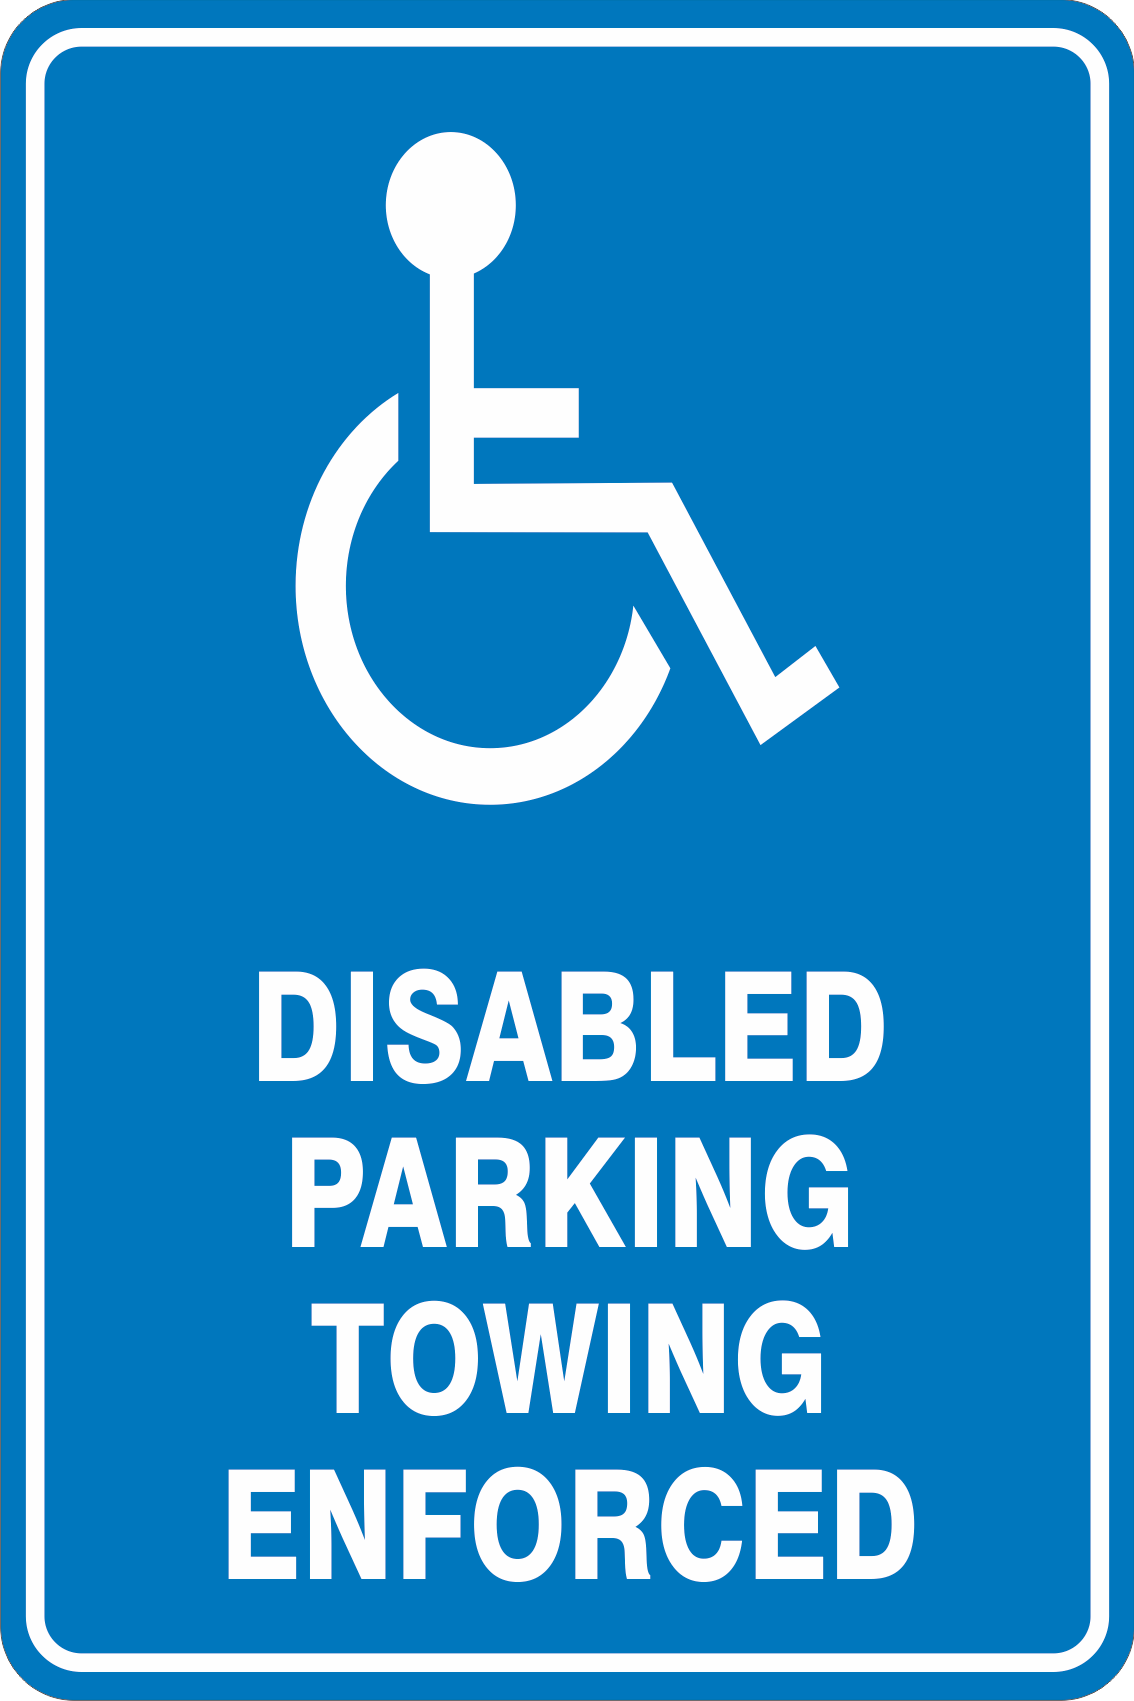 Parking Signs DISABLED PARKING TOWING ENFORCED